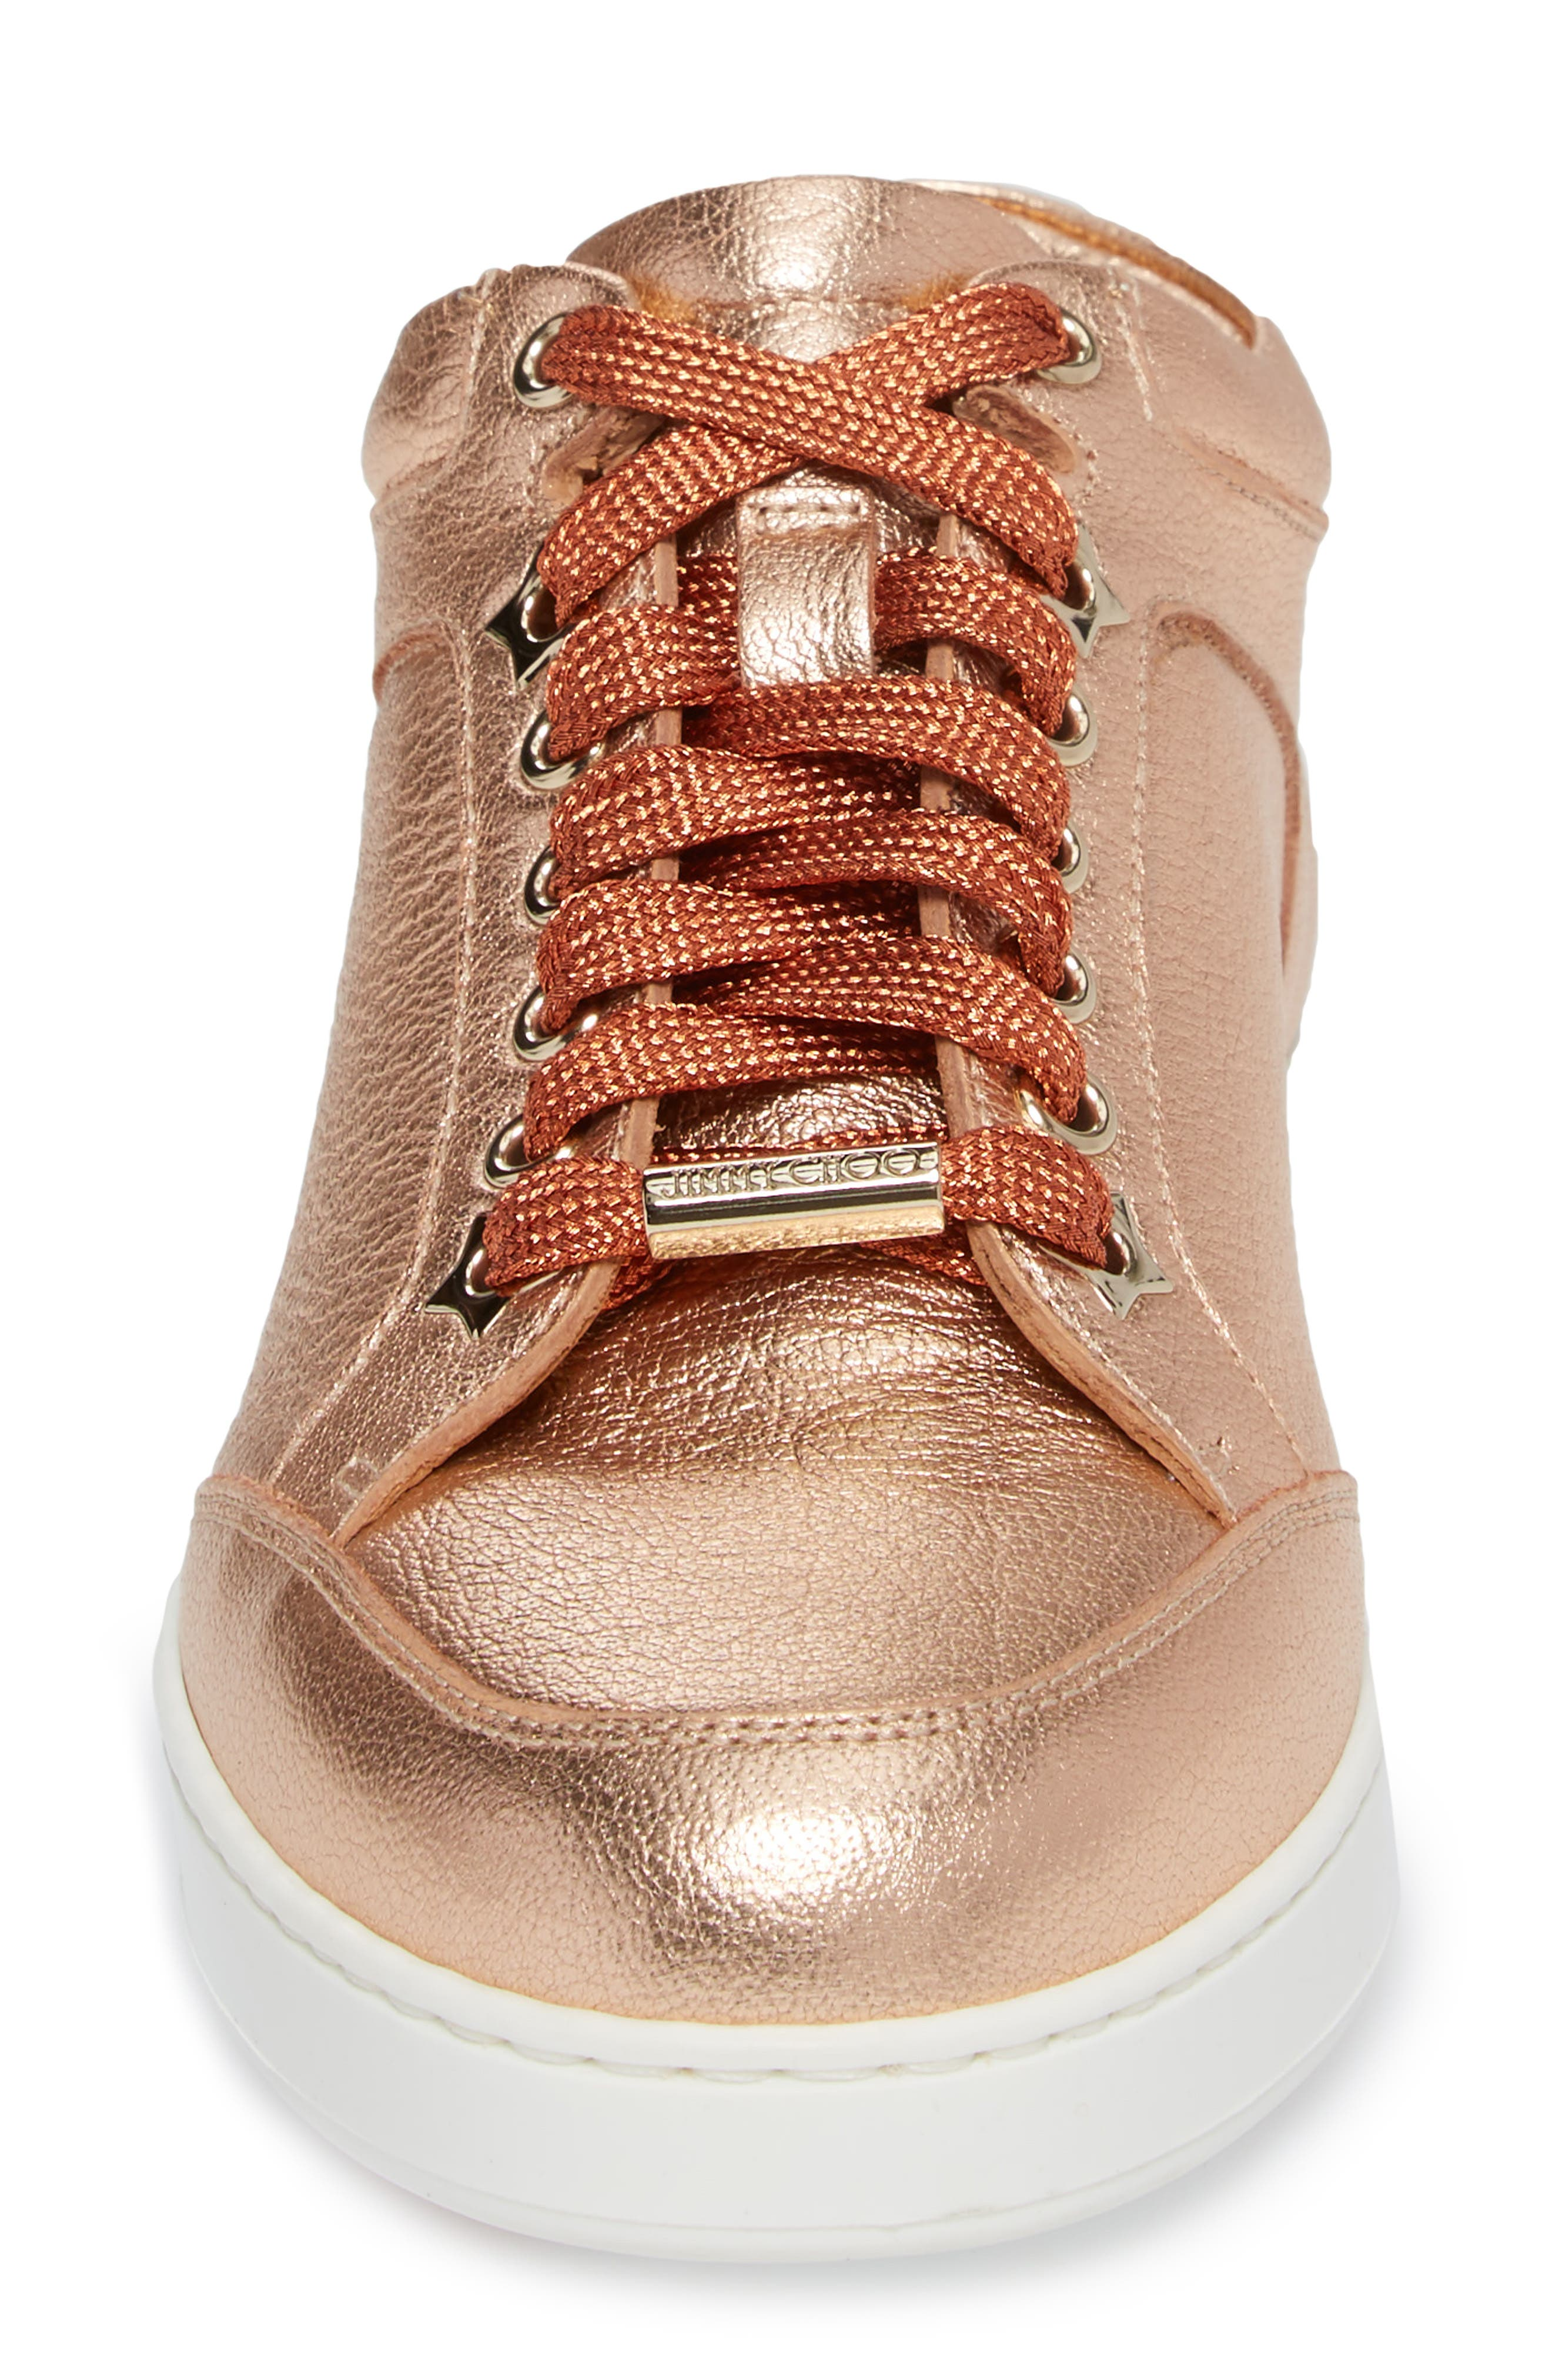 Miami Metallic Sneaker,                             Alternate thumbnail 4, color,                             680